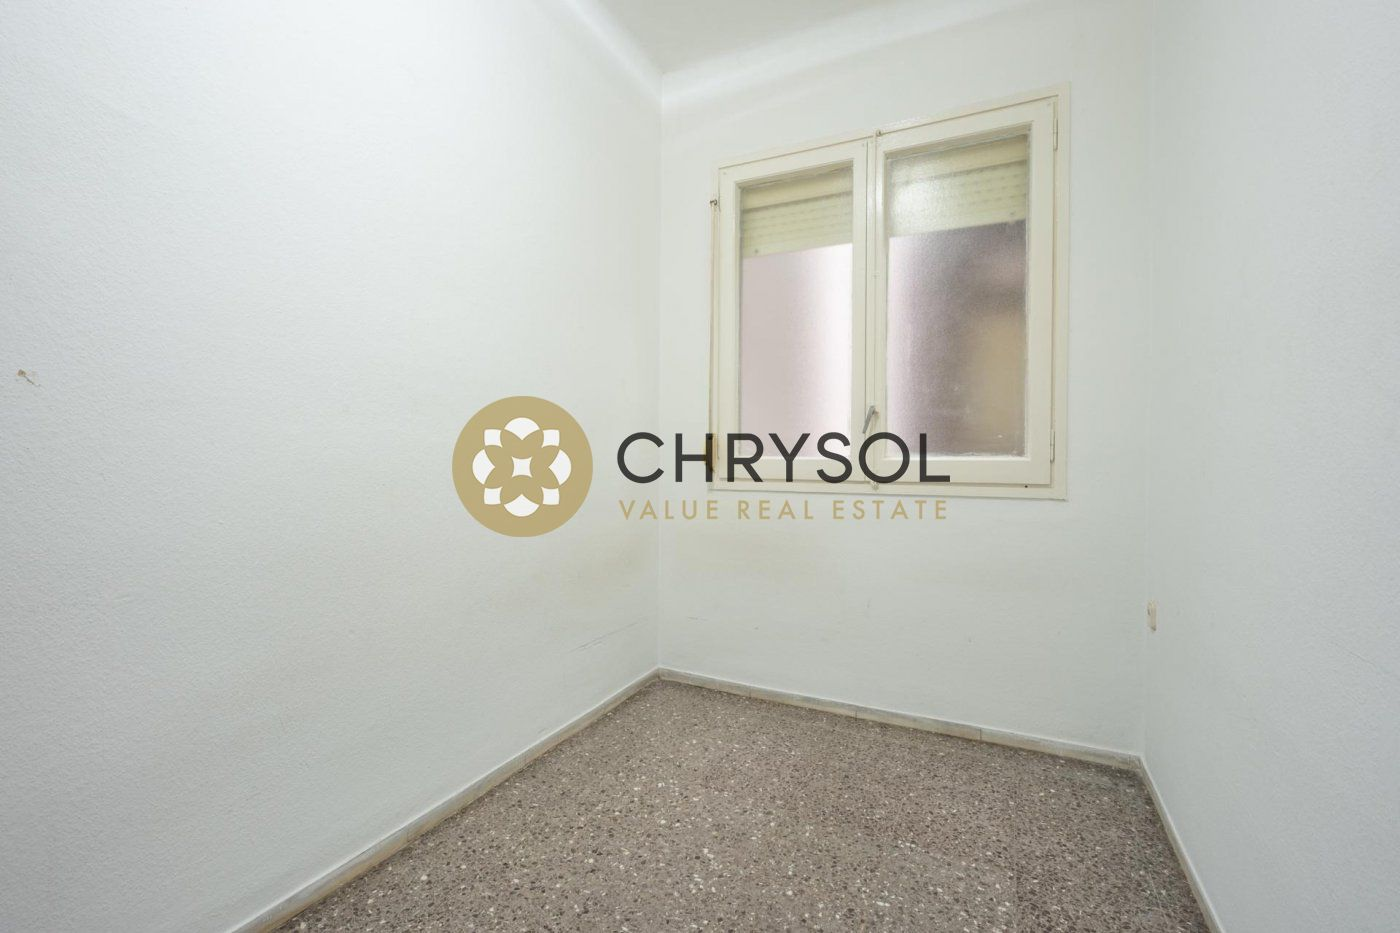 Photogallery - 17 - Chrysol Value